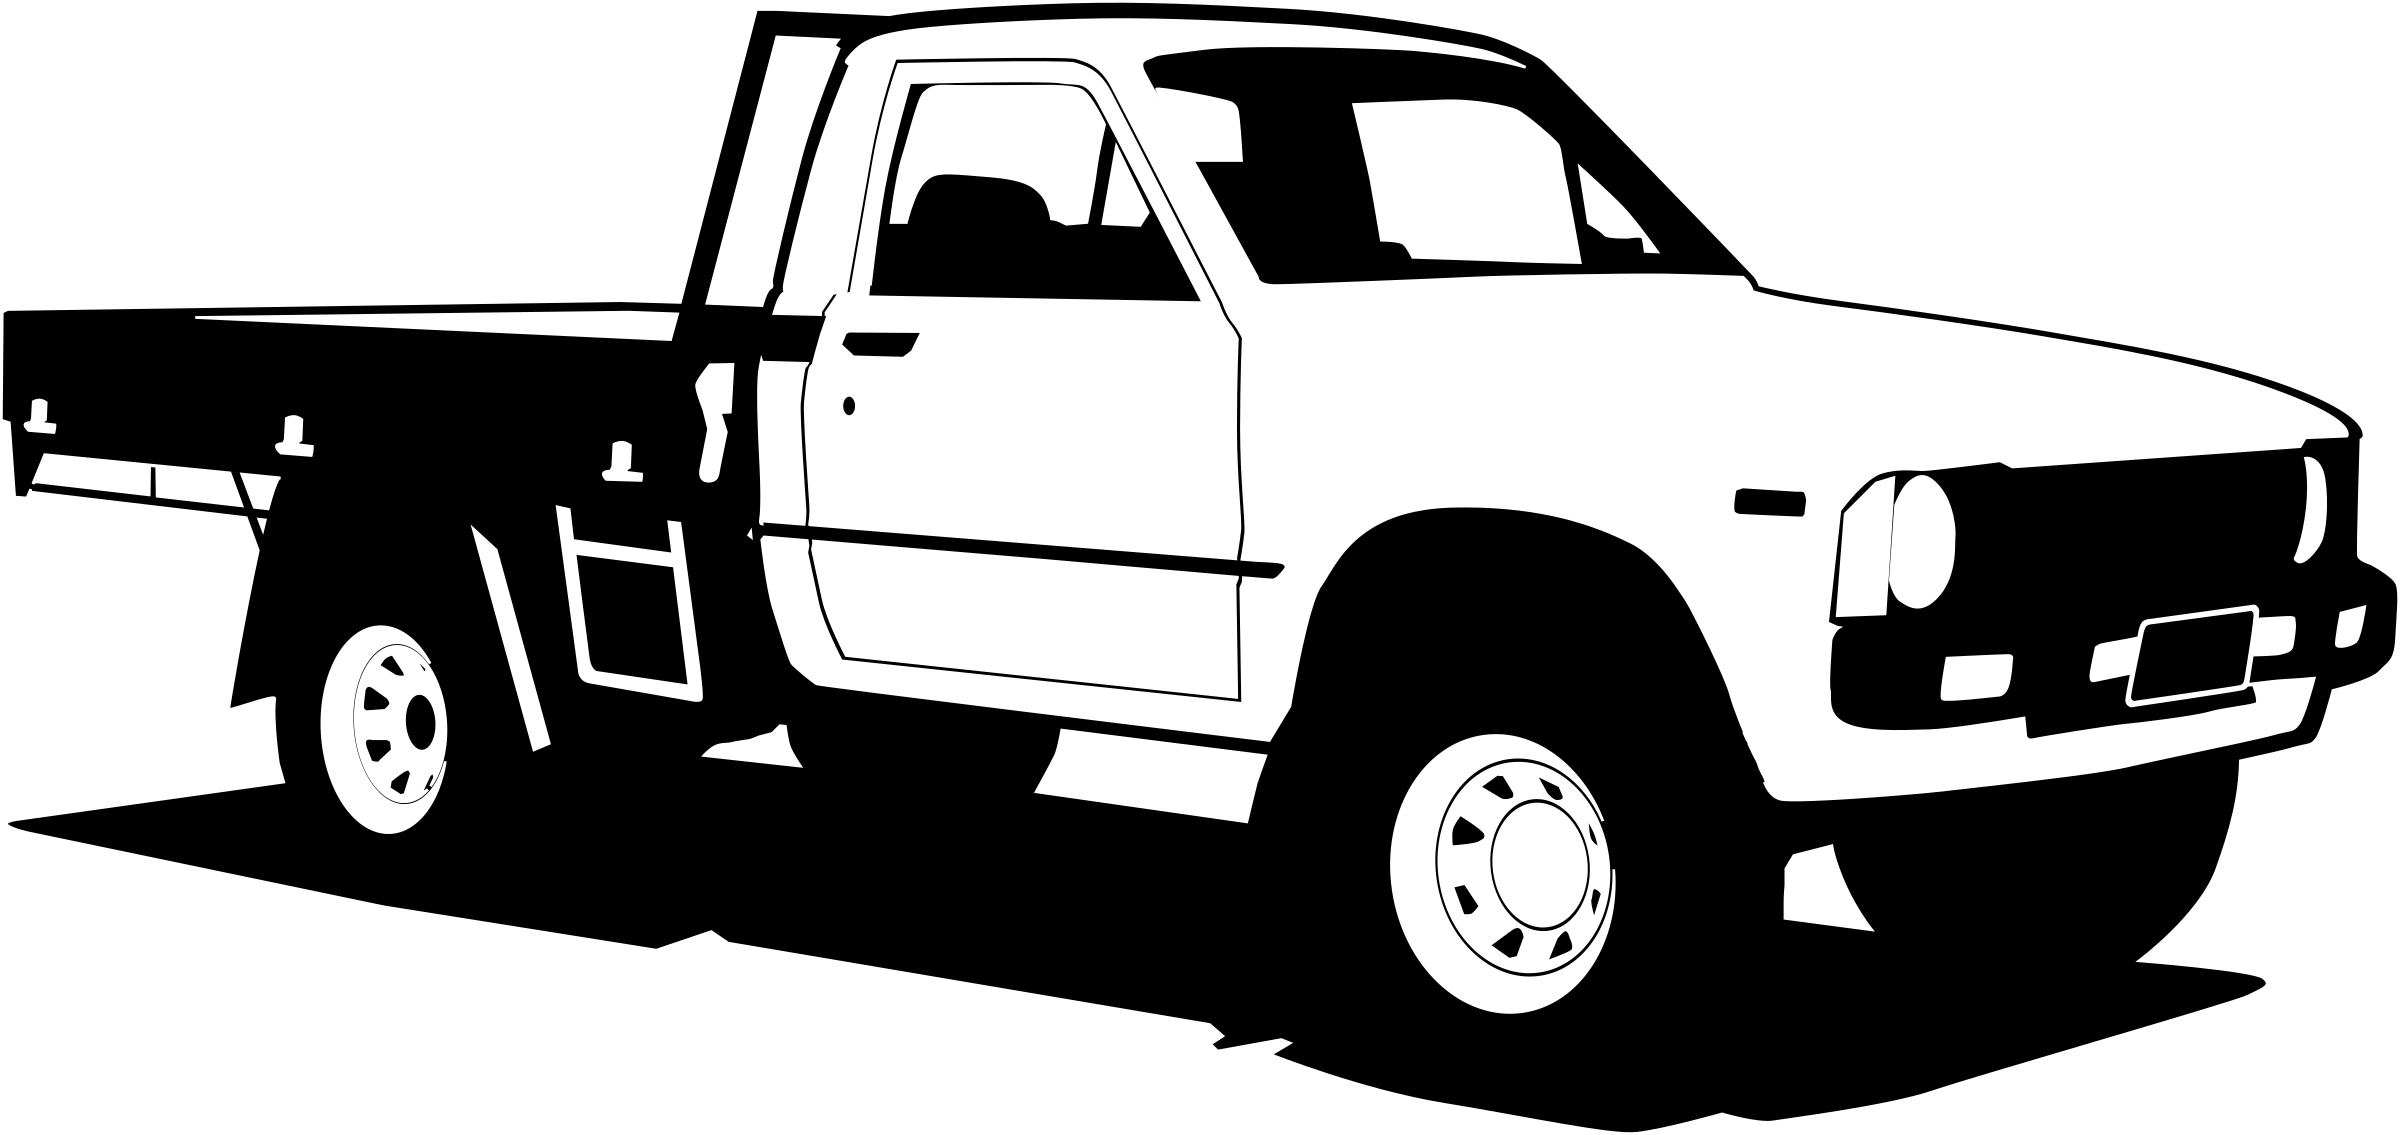 Toyota Hilux by Clue